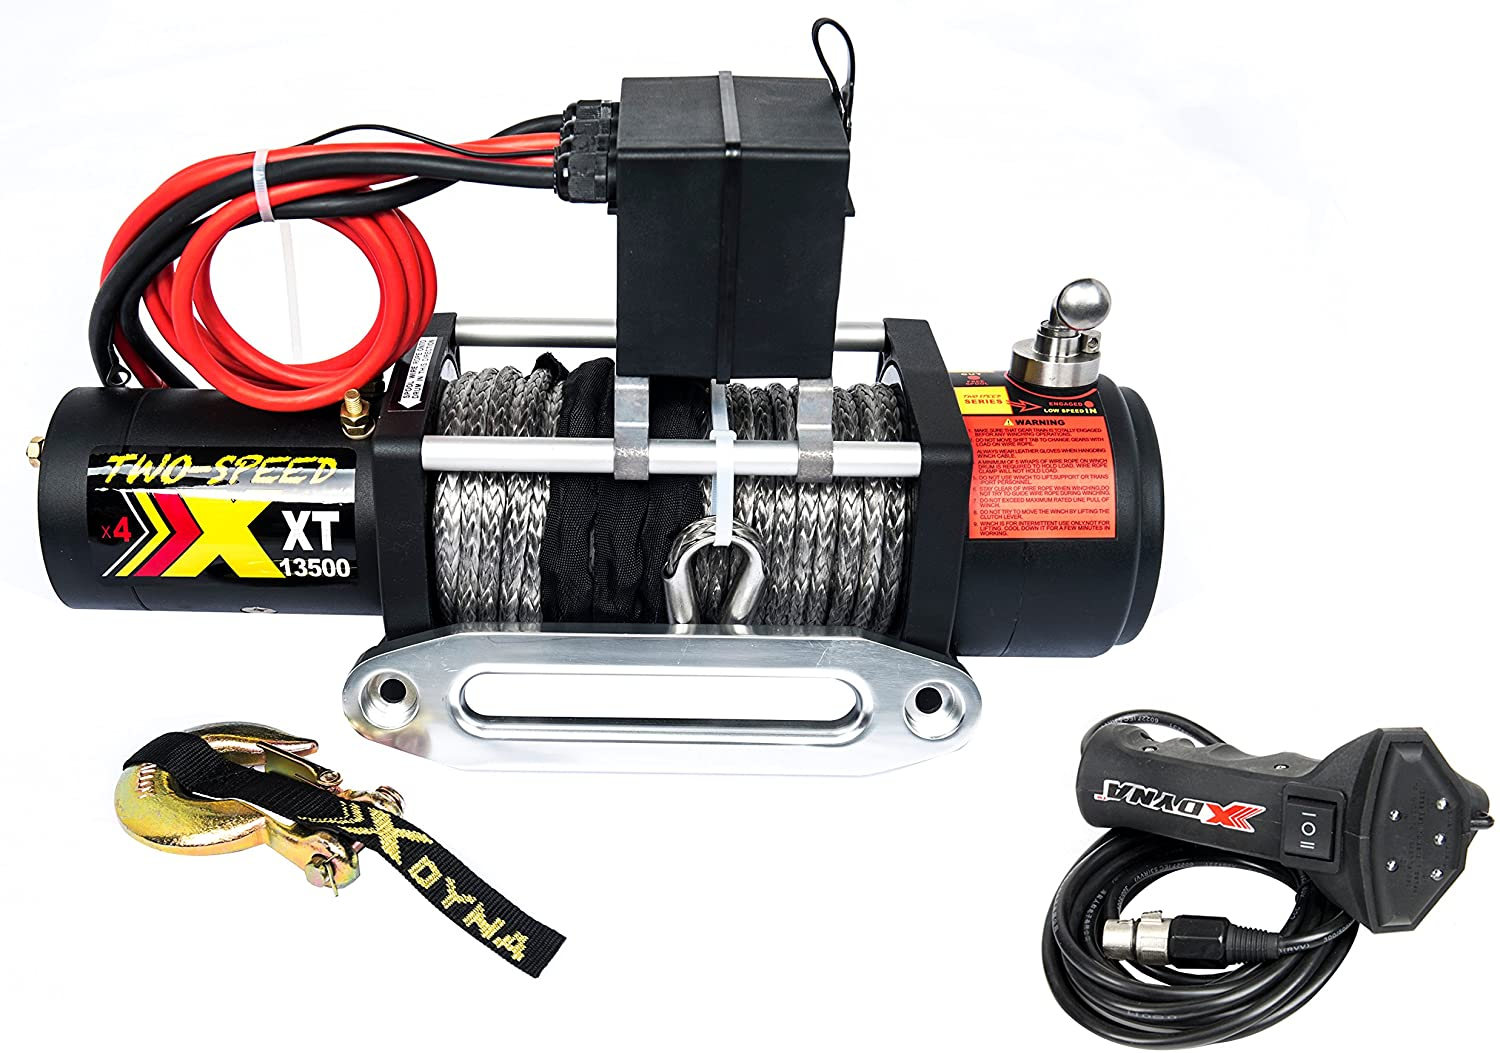 Two Speed 13500lbs 6.6HP Motor Winch, Change Gear Rate by Stainless Cluthch, Over 28m/min Speed, with Torque Limited Protector, Intelligent Remote Handle Showing Load, Used to SUV Track